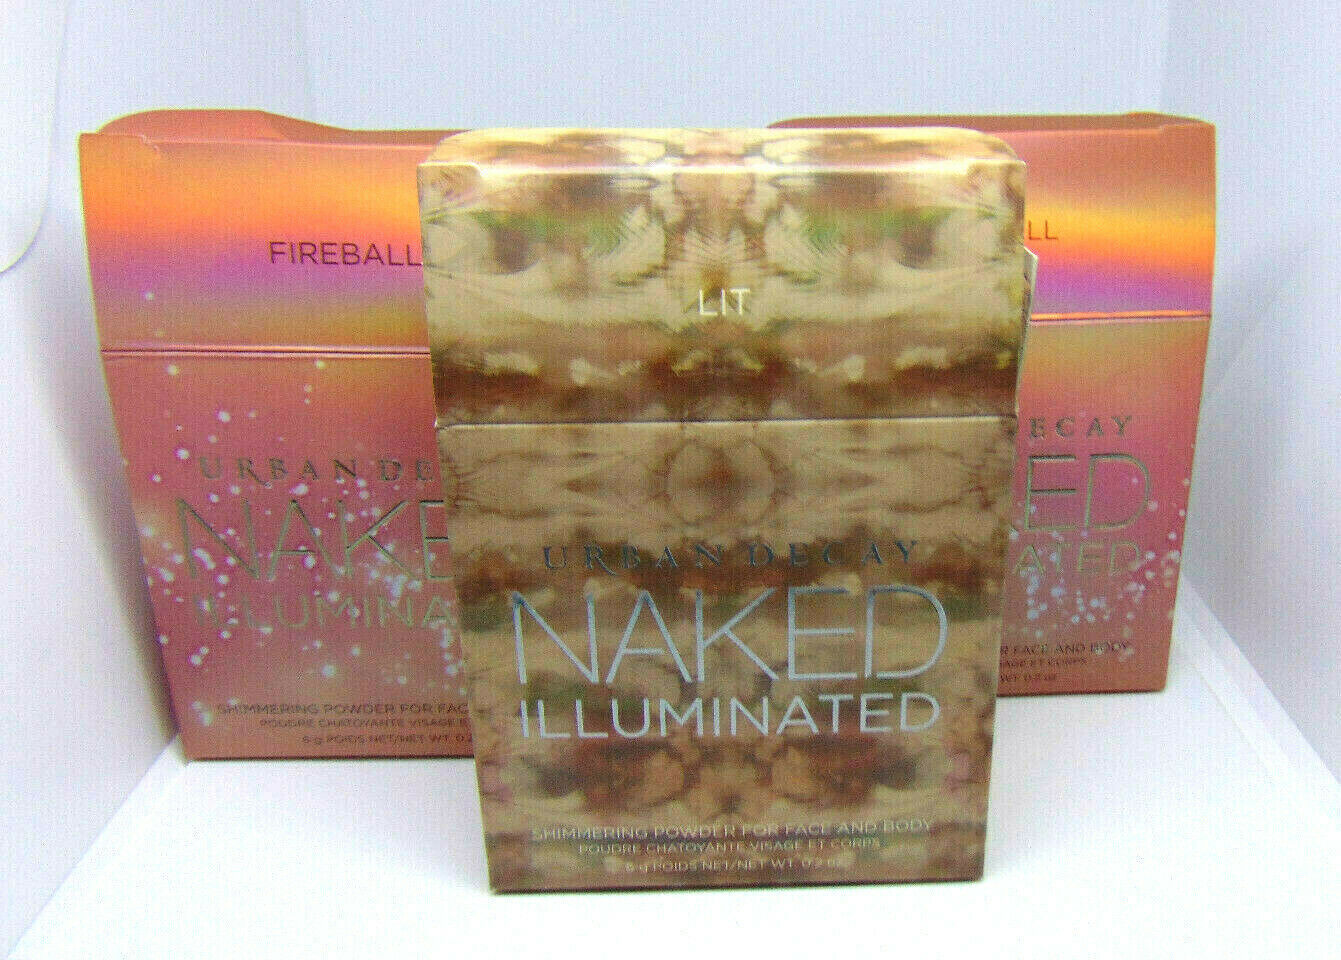 Primary image for URBAN DECAY NAKED ILLUMINATED  Shimmering Powder  0.20oz/6g  Choose Shade